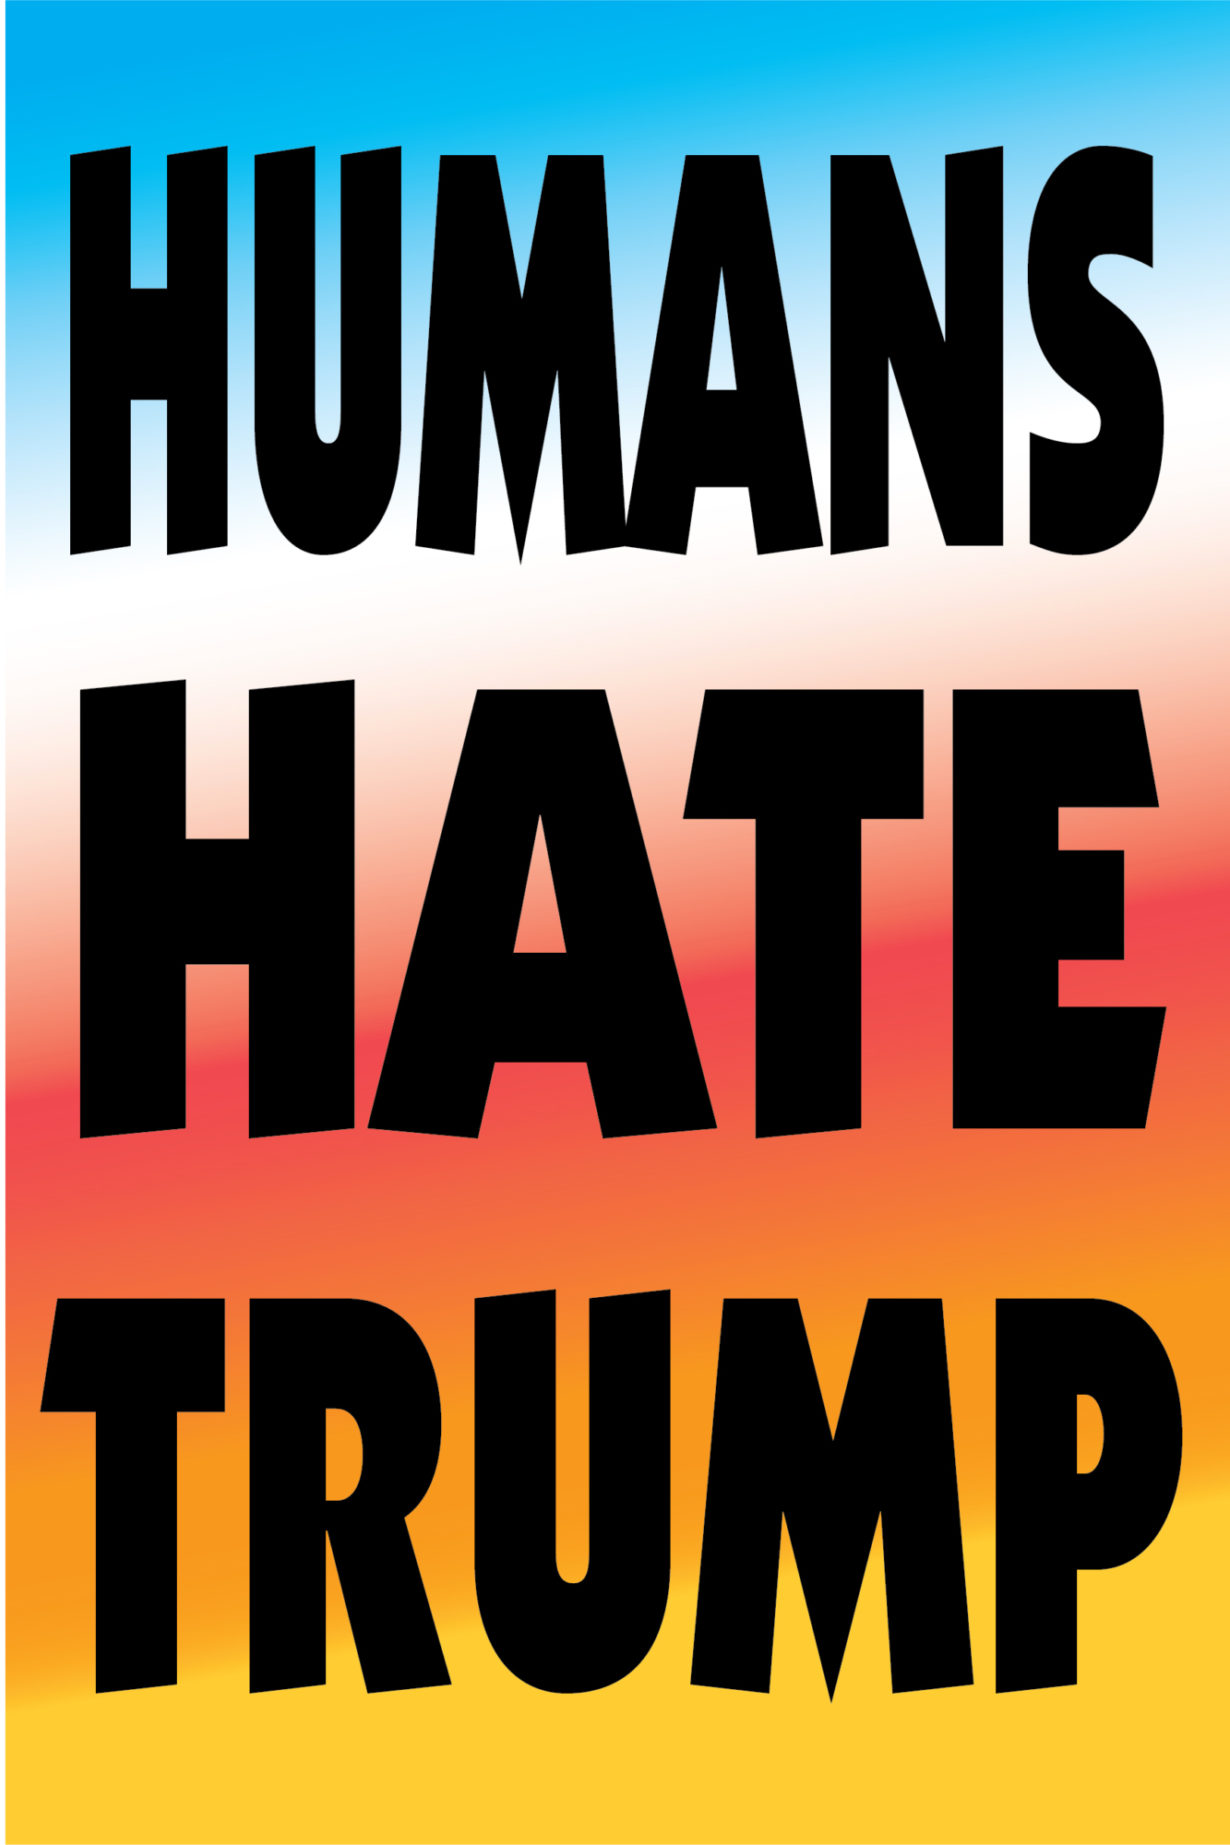 NP_01_25_2017_Humans-Hate-Trump.jpg